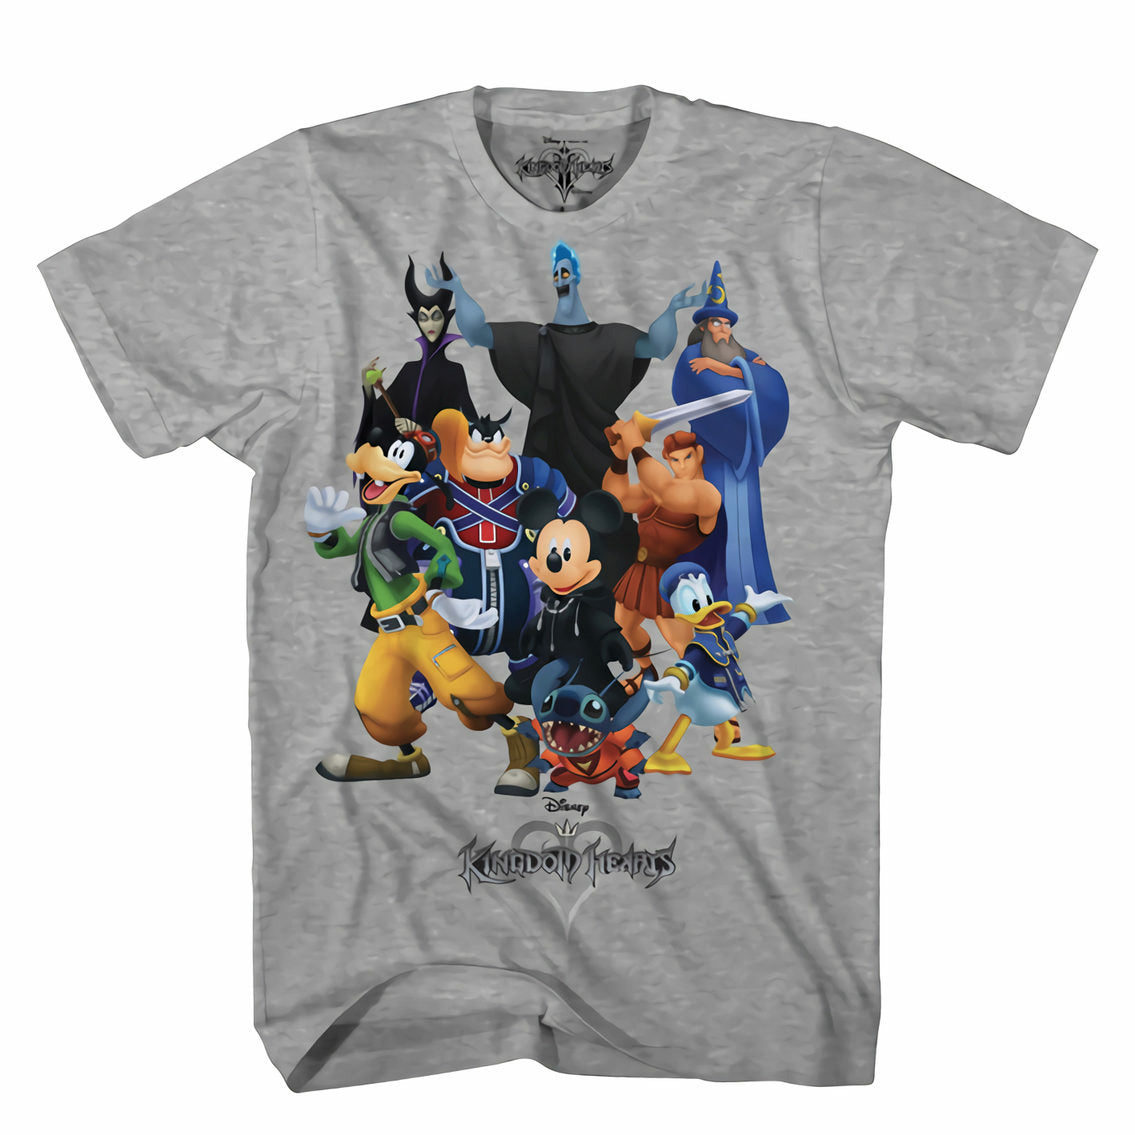 Kingdom Hearts King Mash Graphic Heather T-Shirt